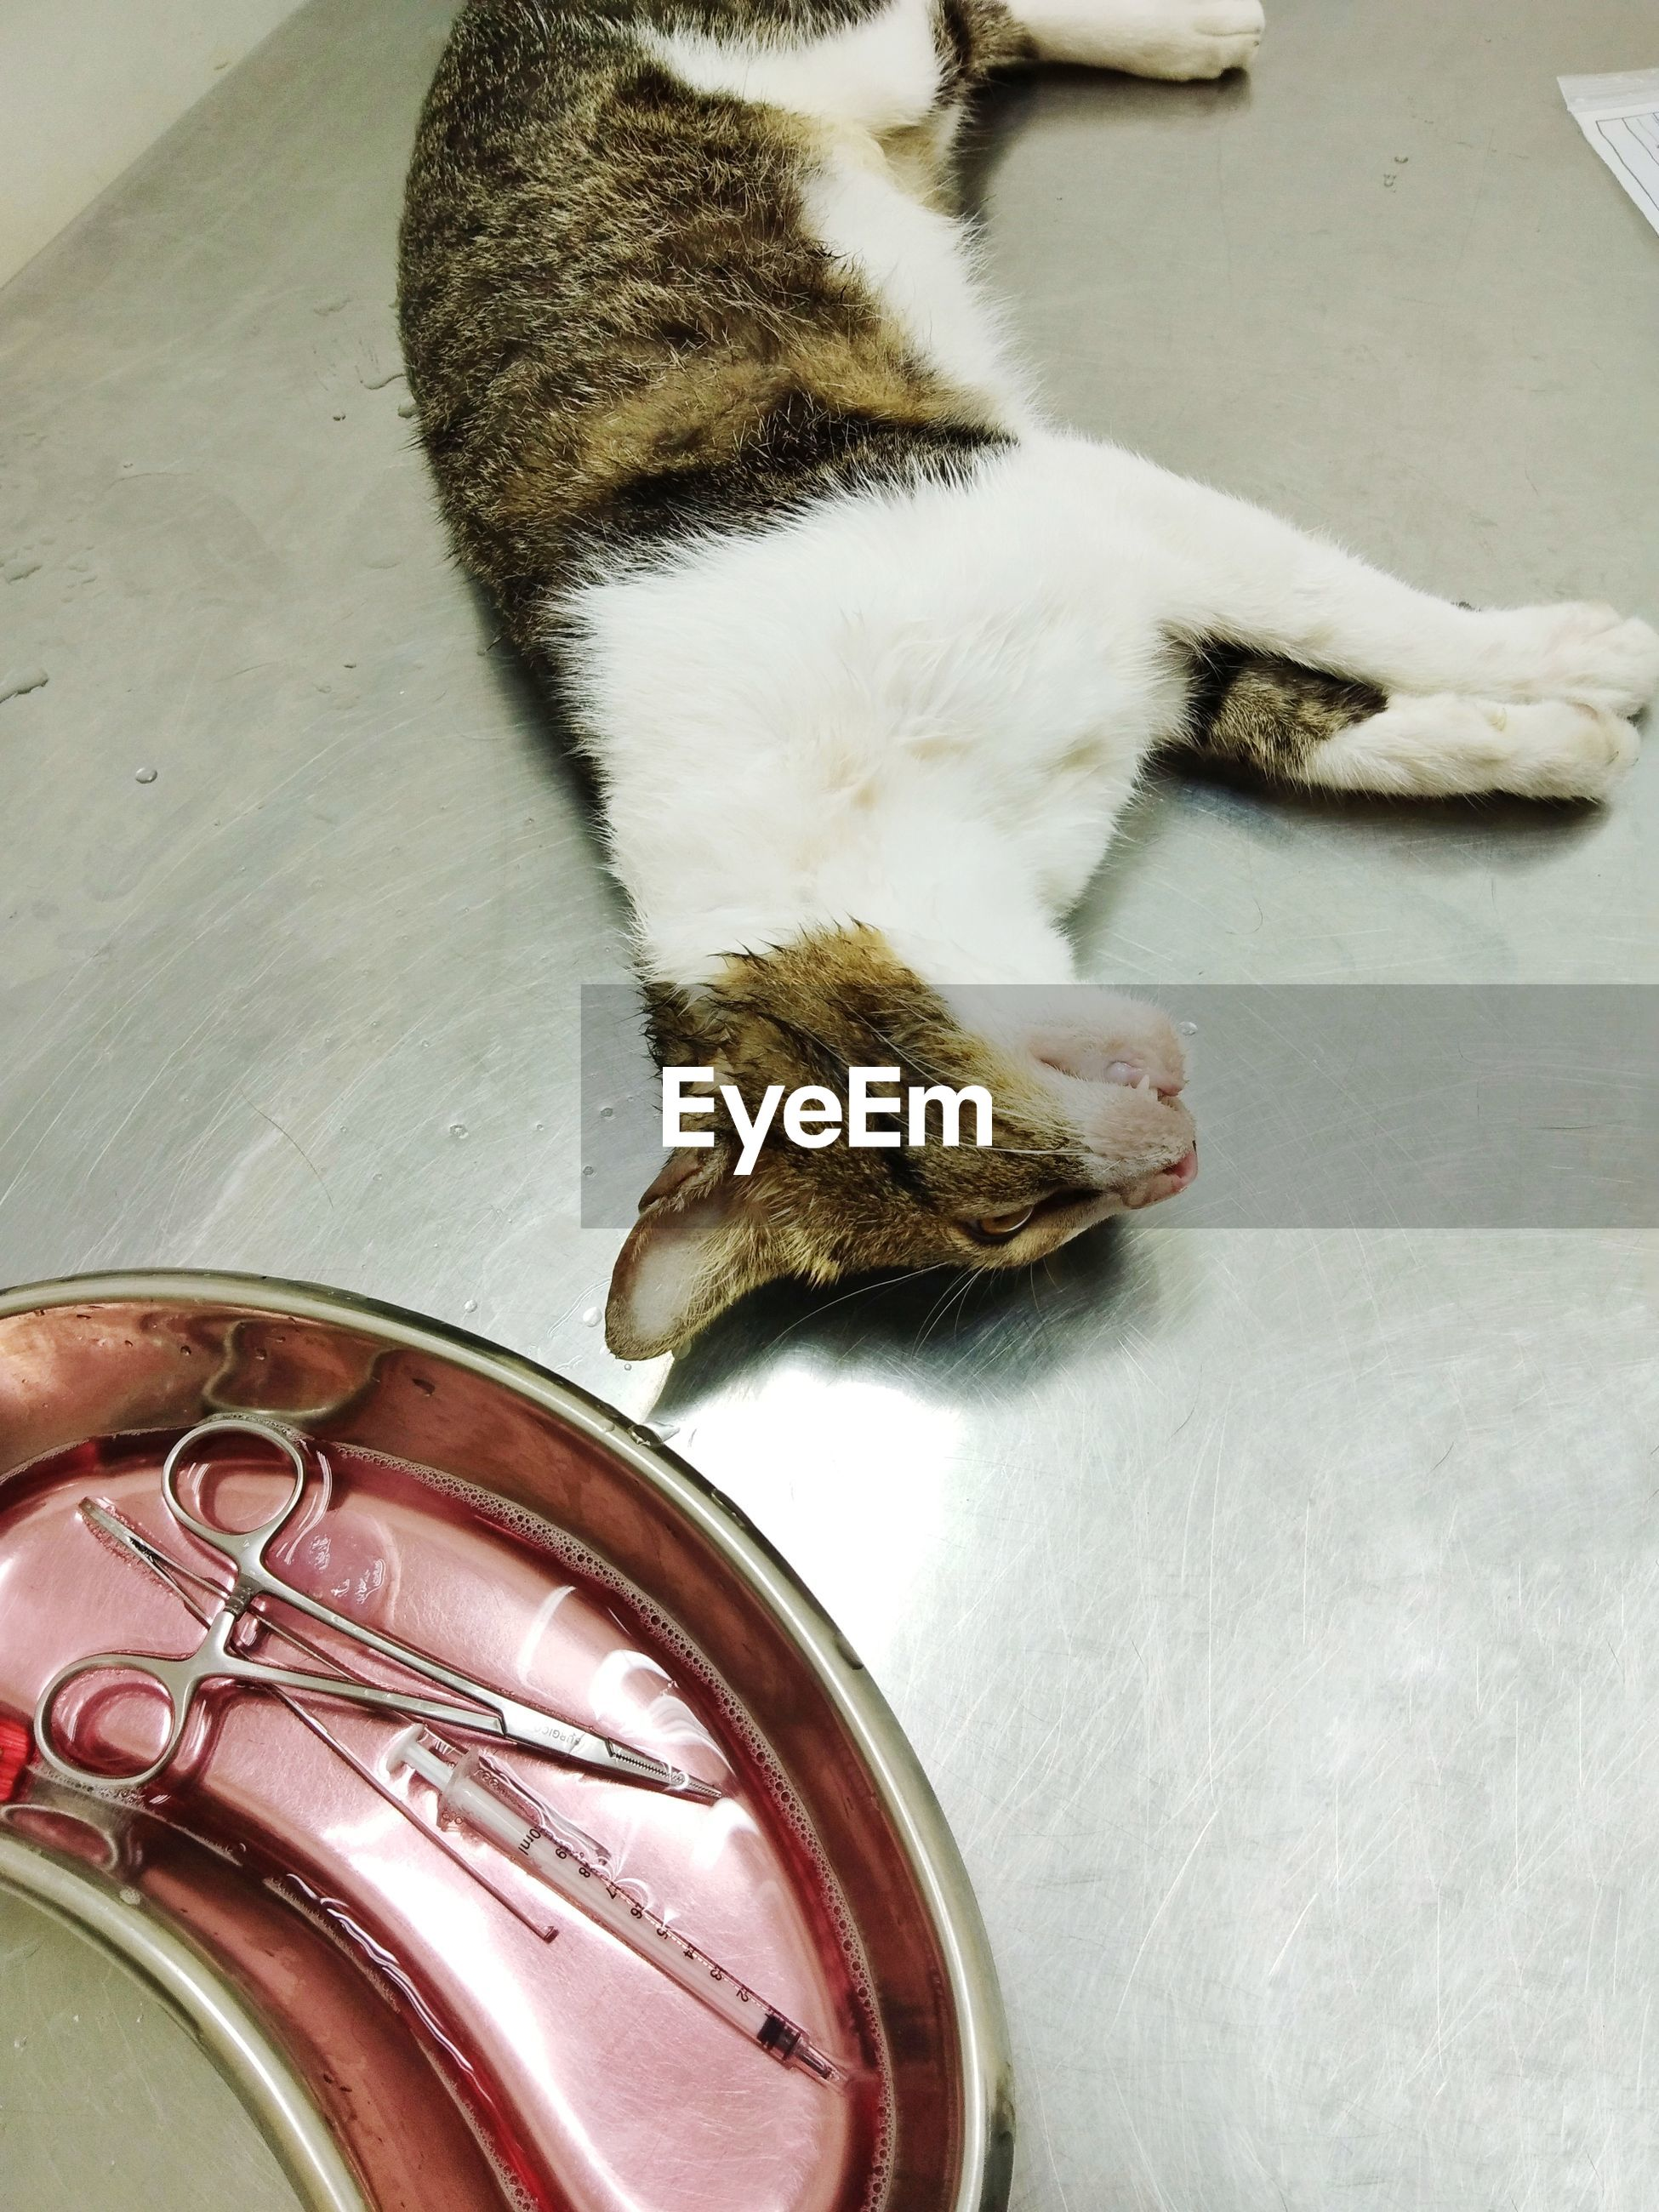 High angle view of an unconscious cat undergoing treatment at a veterinary clinic.